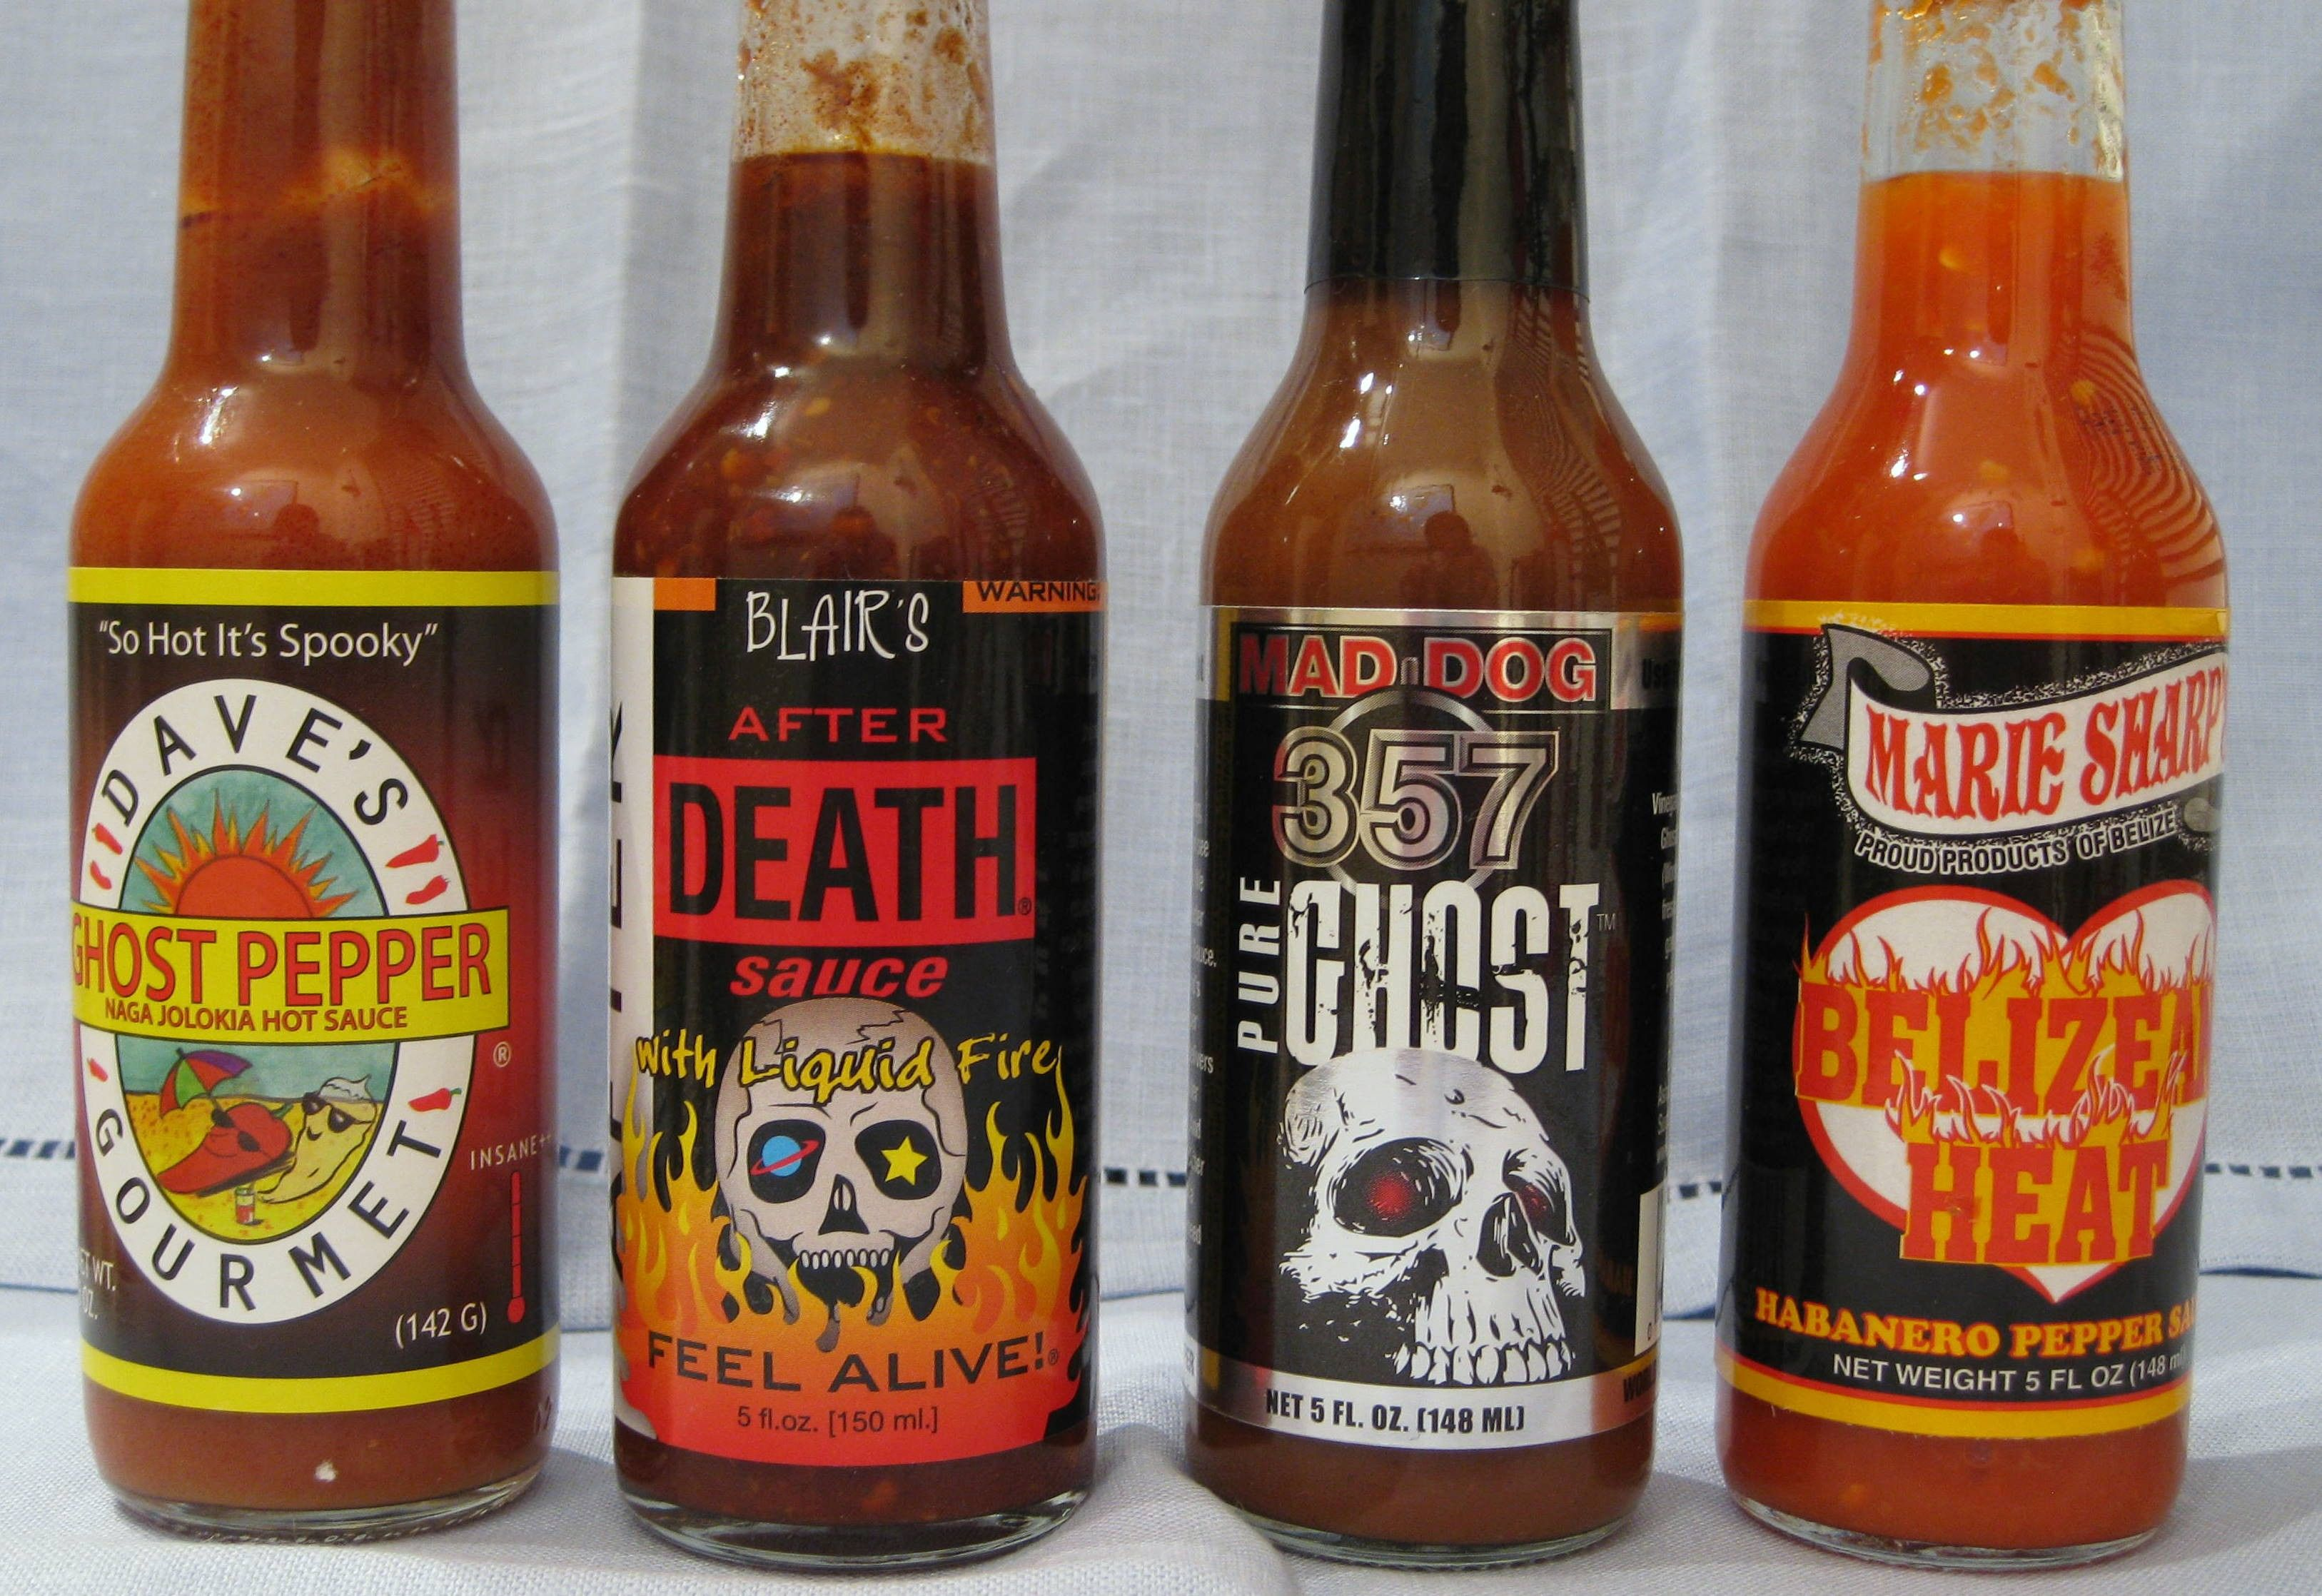 Top 5 Hot Sauces That Will Make You Cry Like a Baby